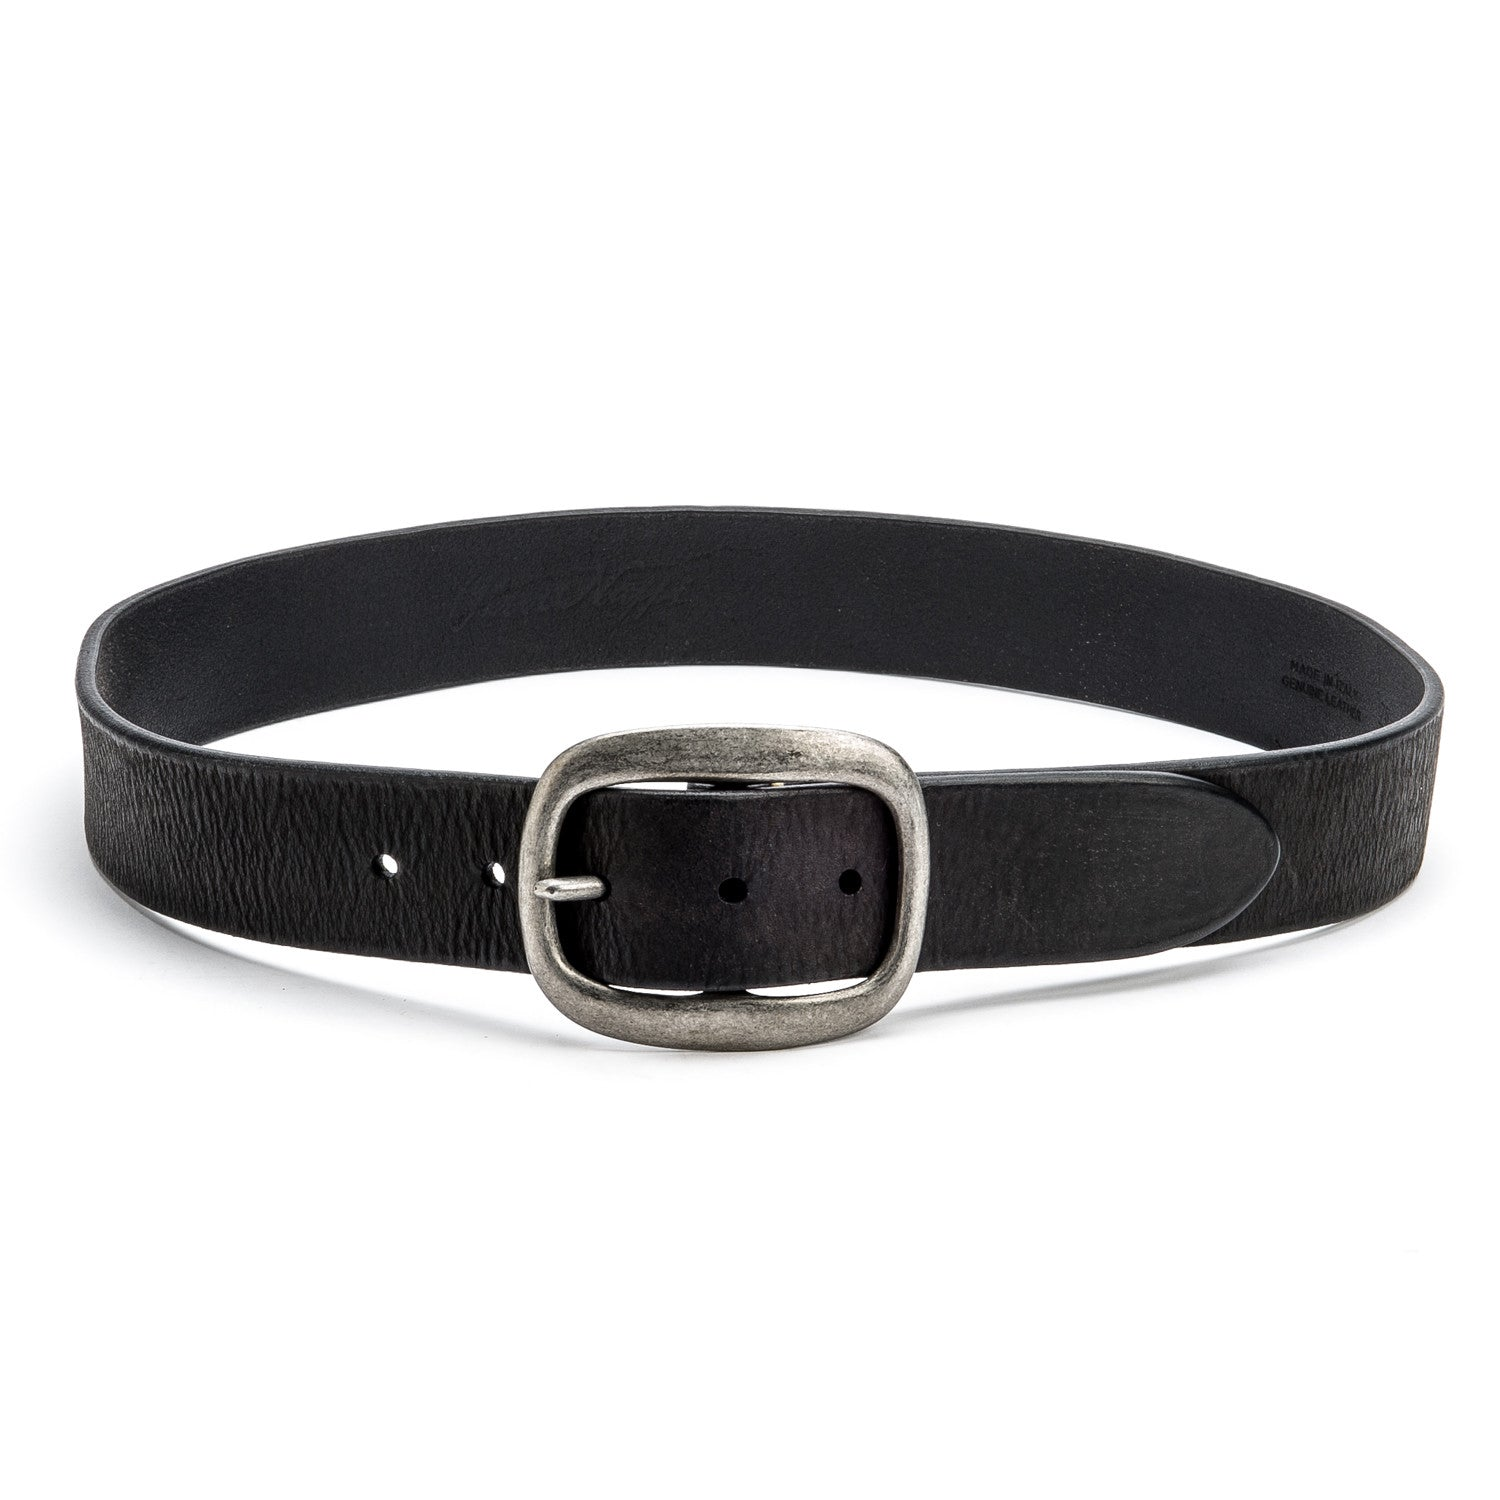 Nero Belt with Oval Buckle - Peter Nappi - 3